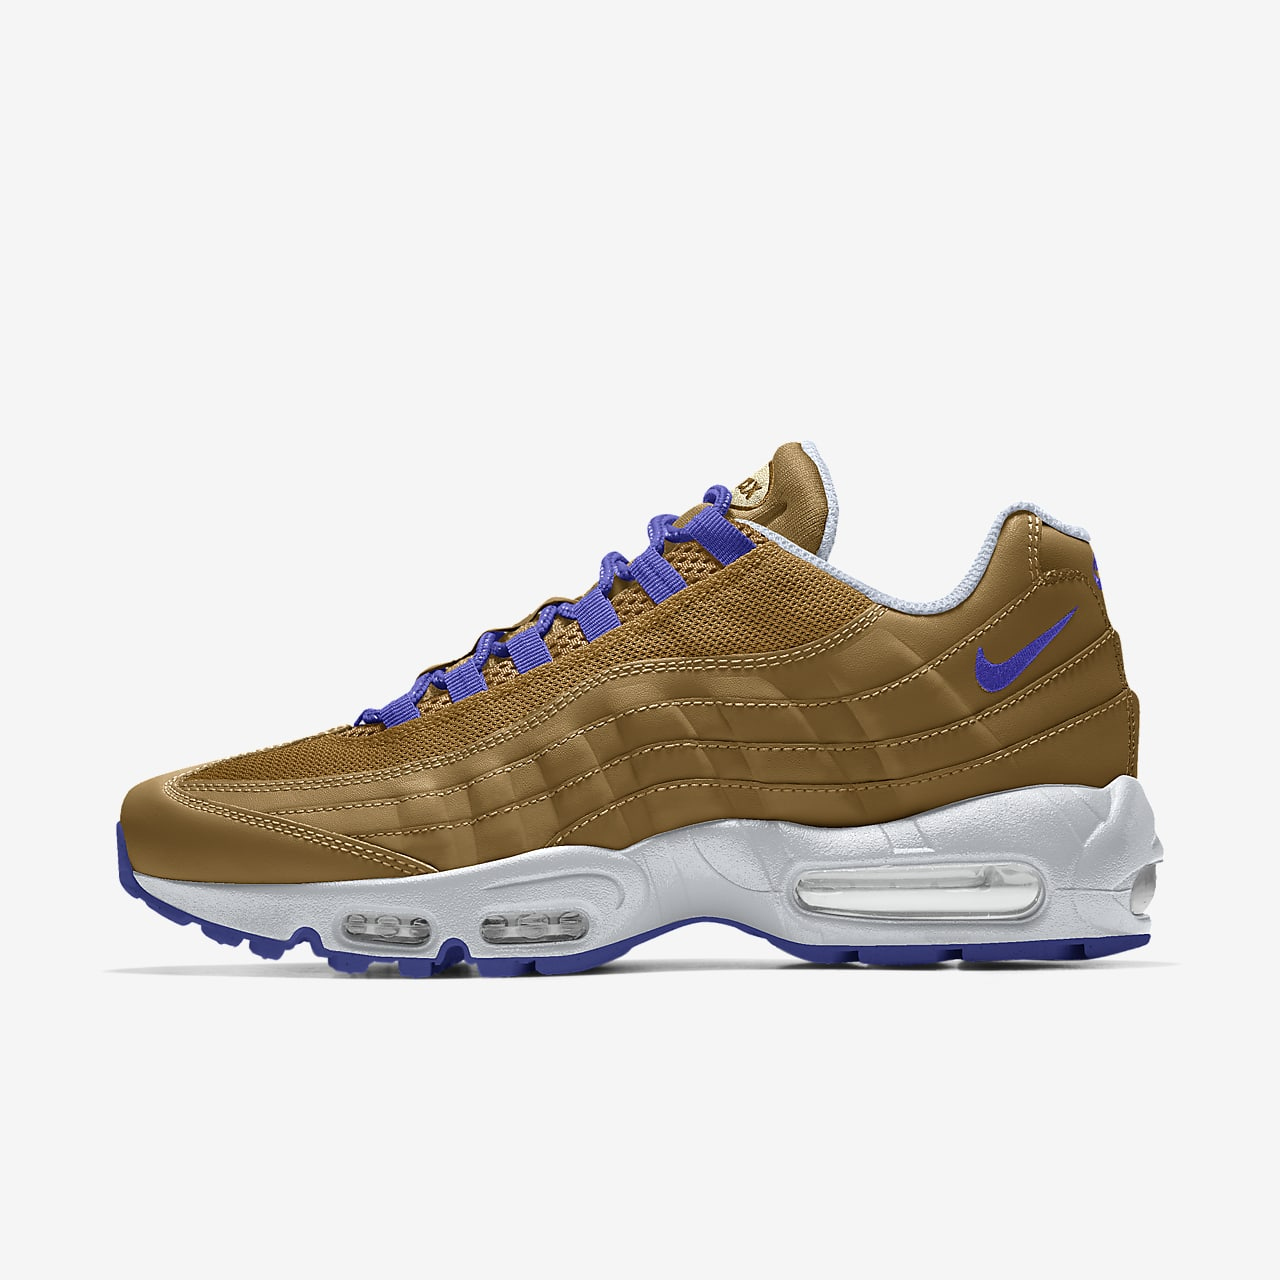 Chaussure personnalisable Nike Air Max 95 By You